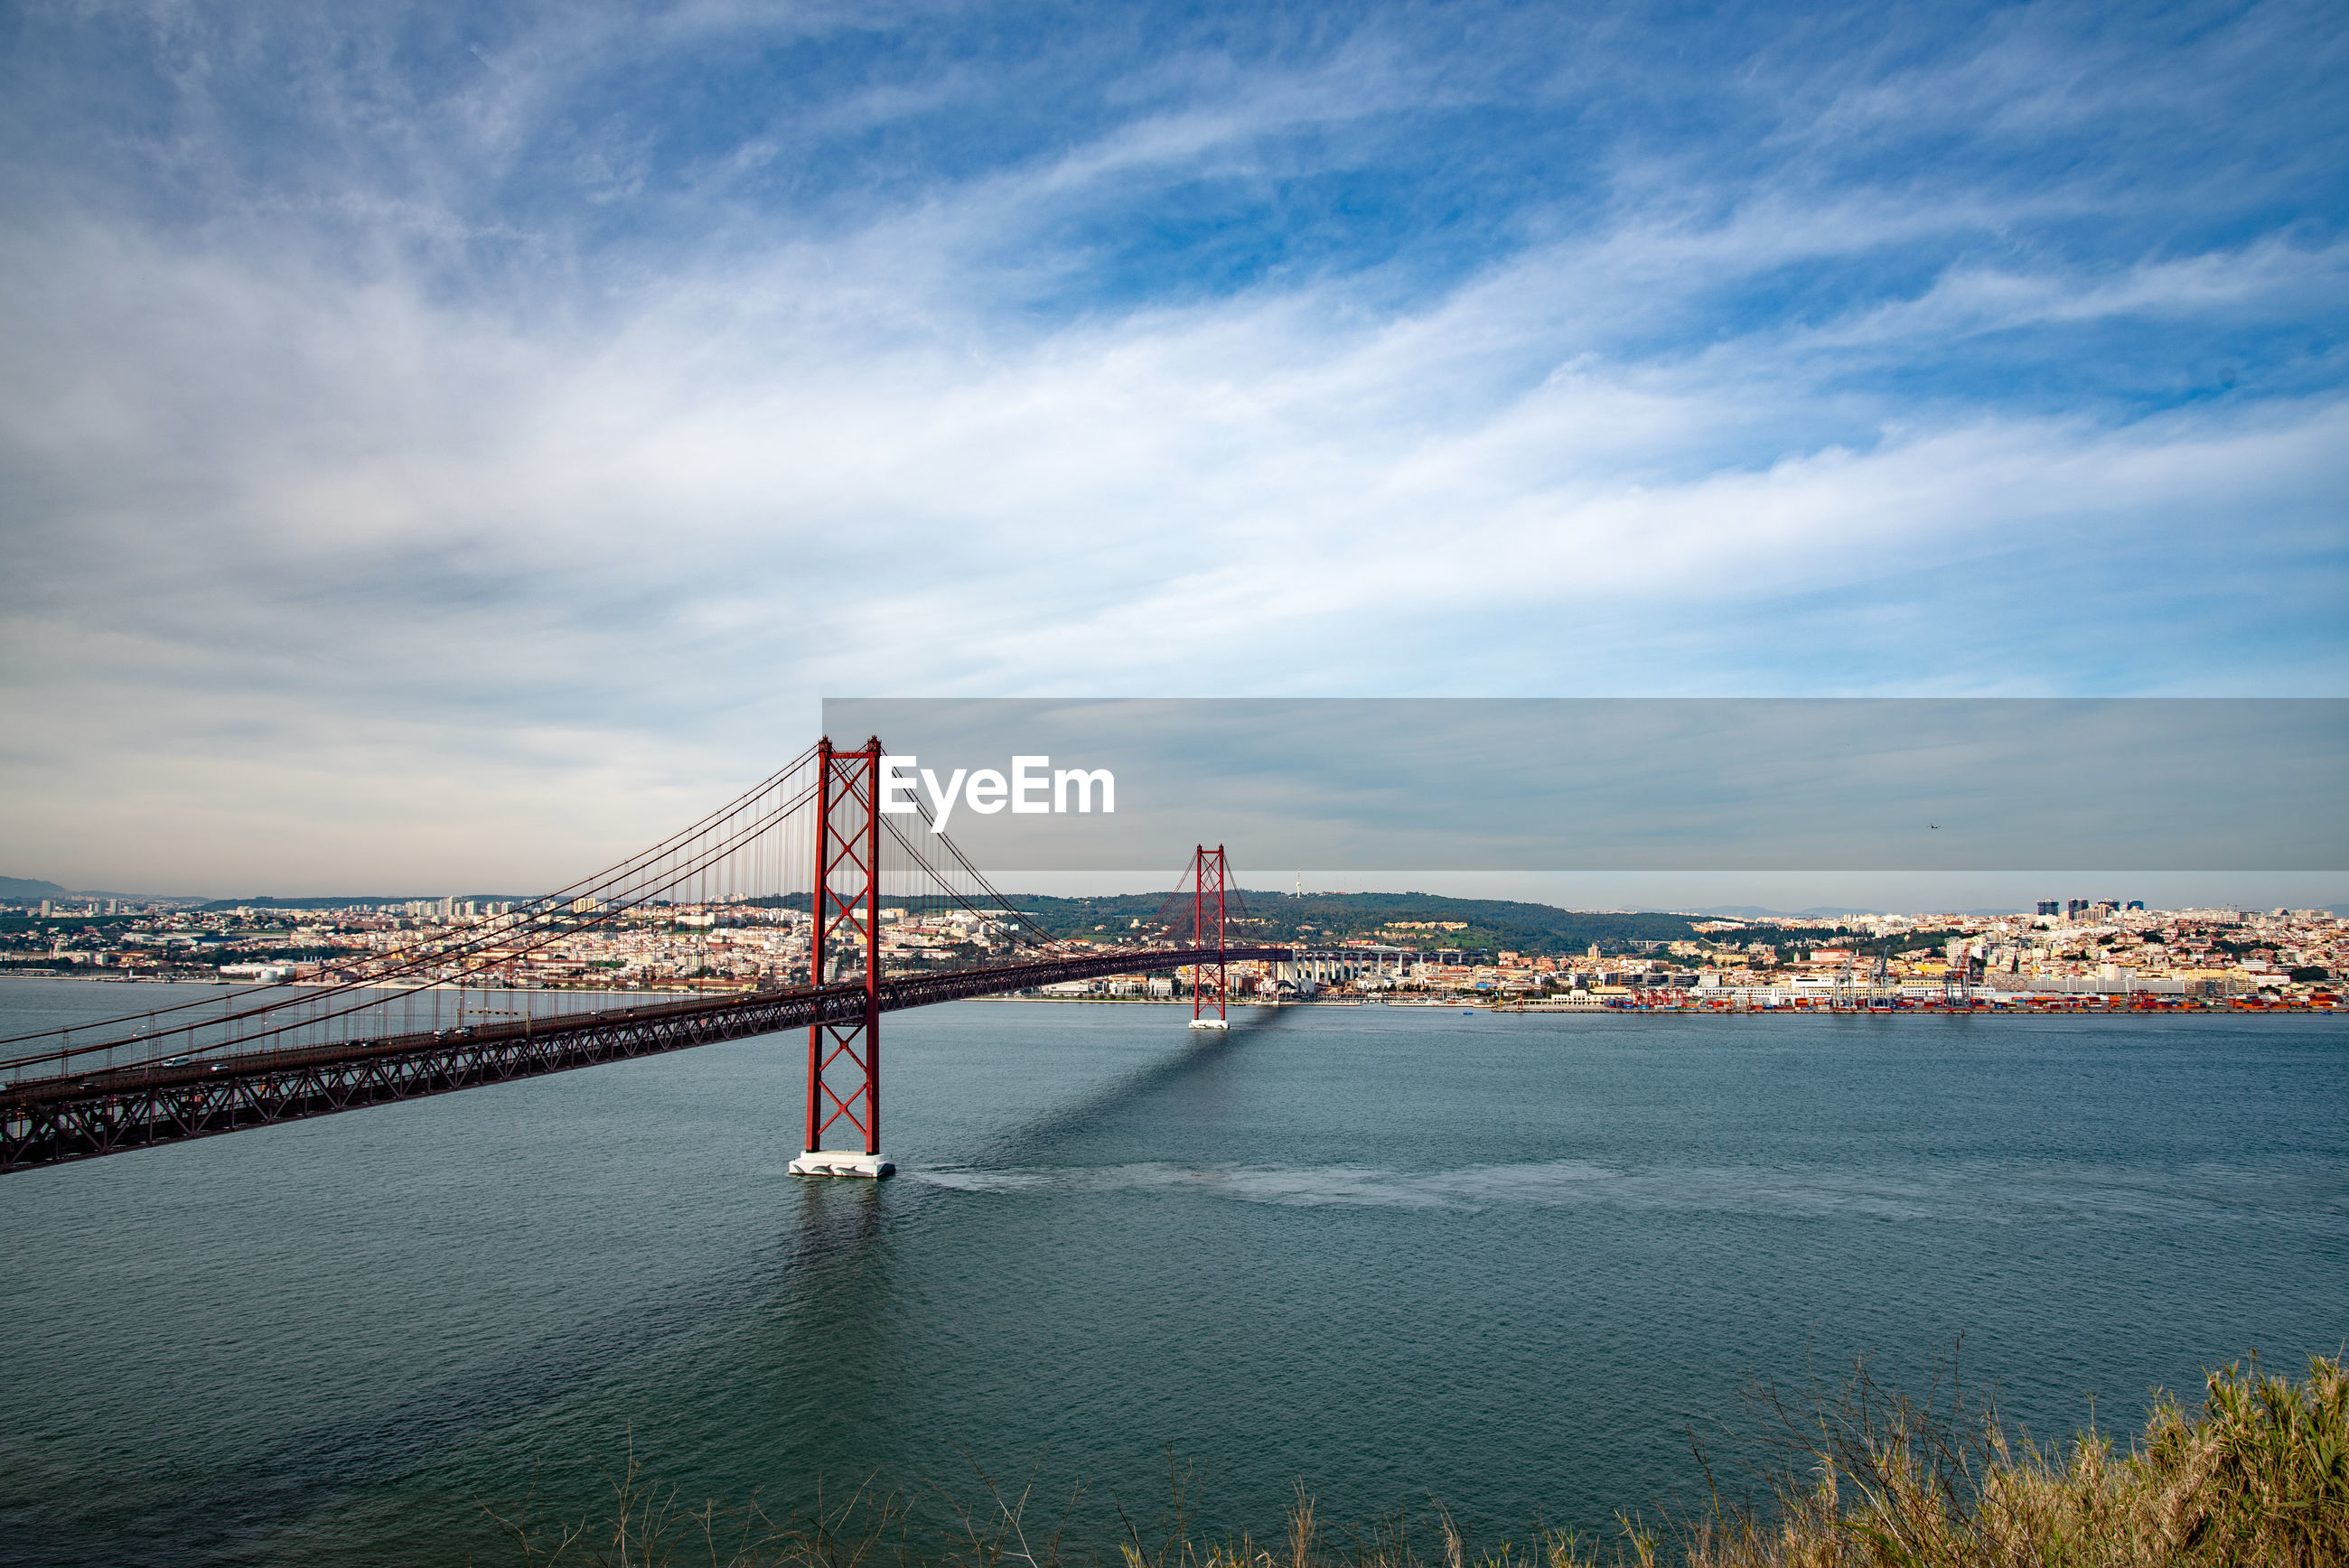 VIEW OF SUSPENSION BRIDGE IN CITY AT WATERFRONT